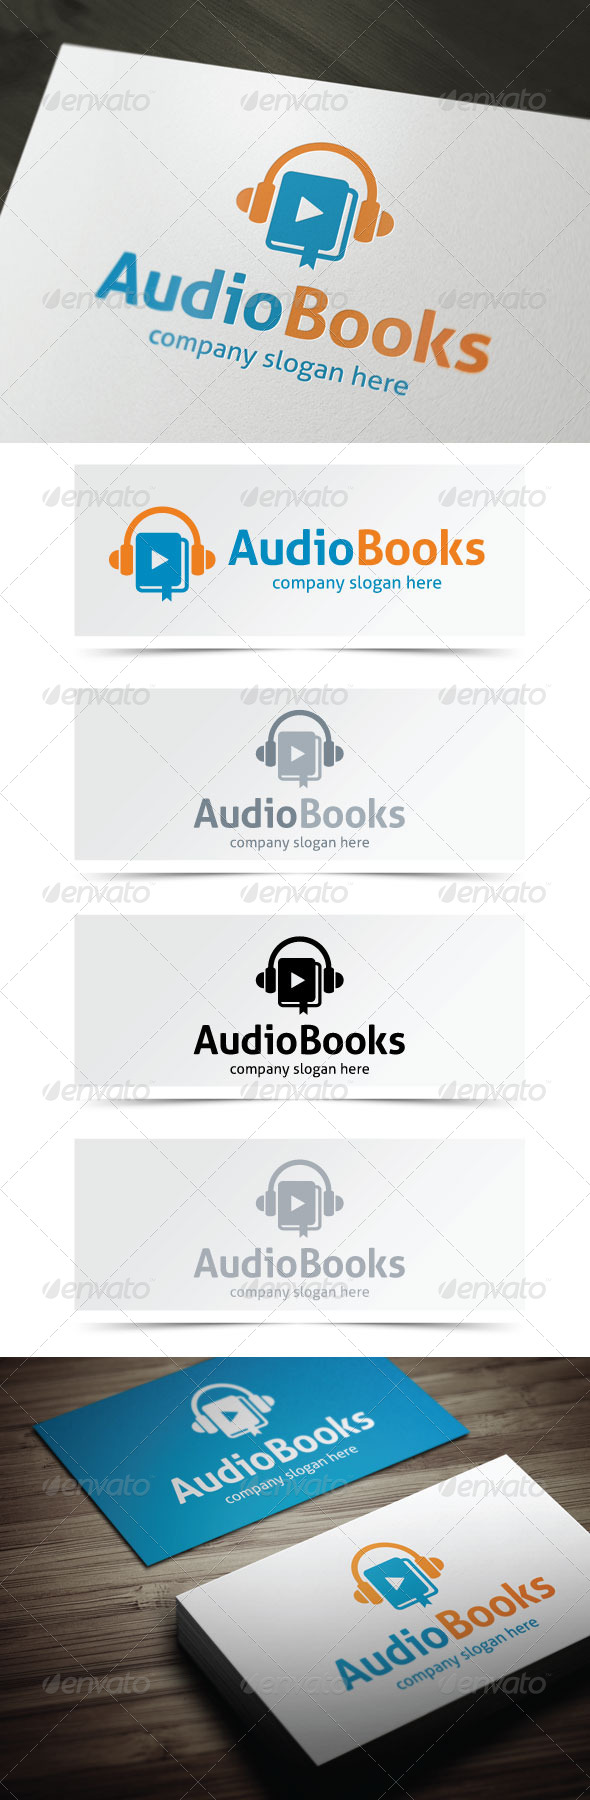 GraphicRiver Audio Books 5171775